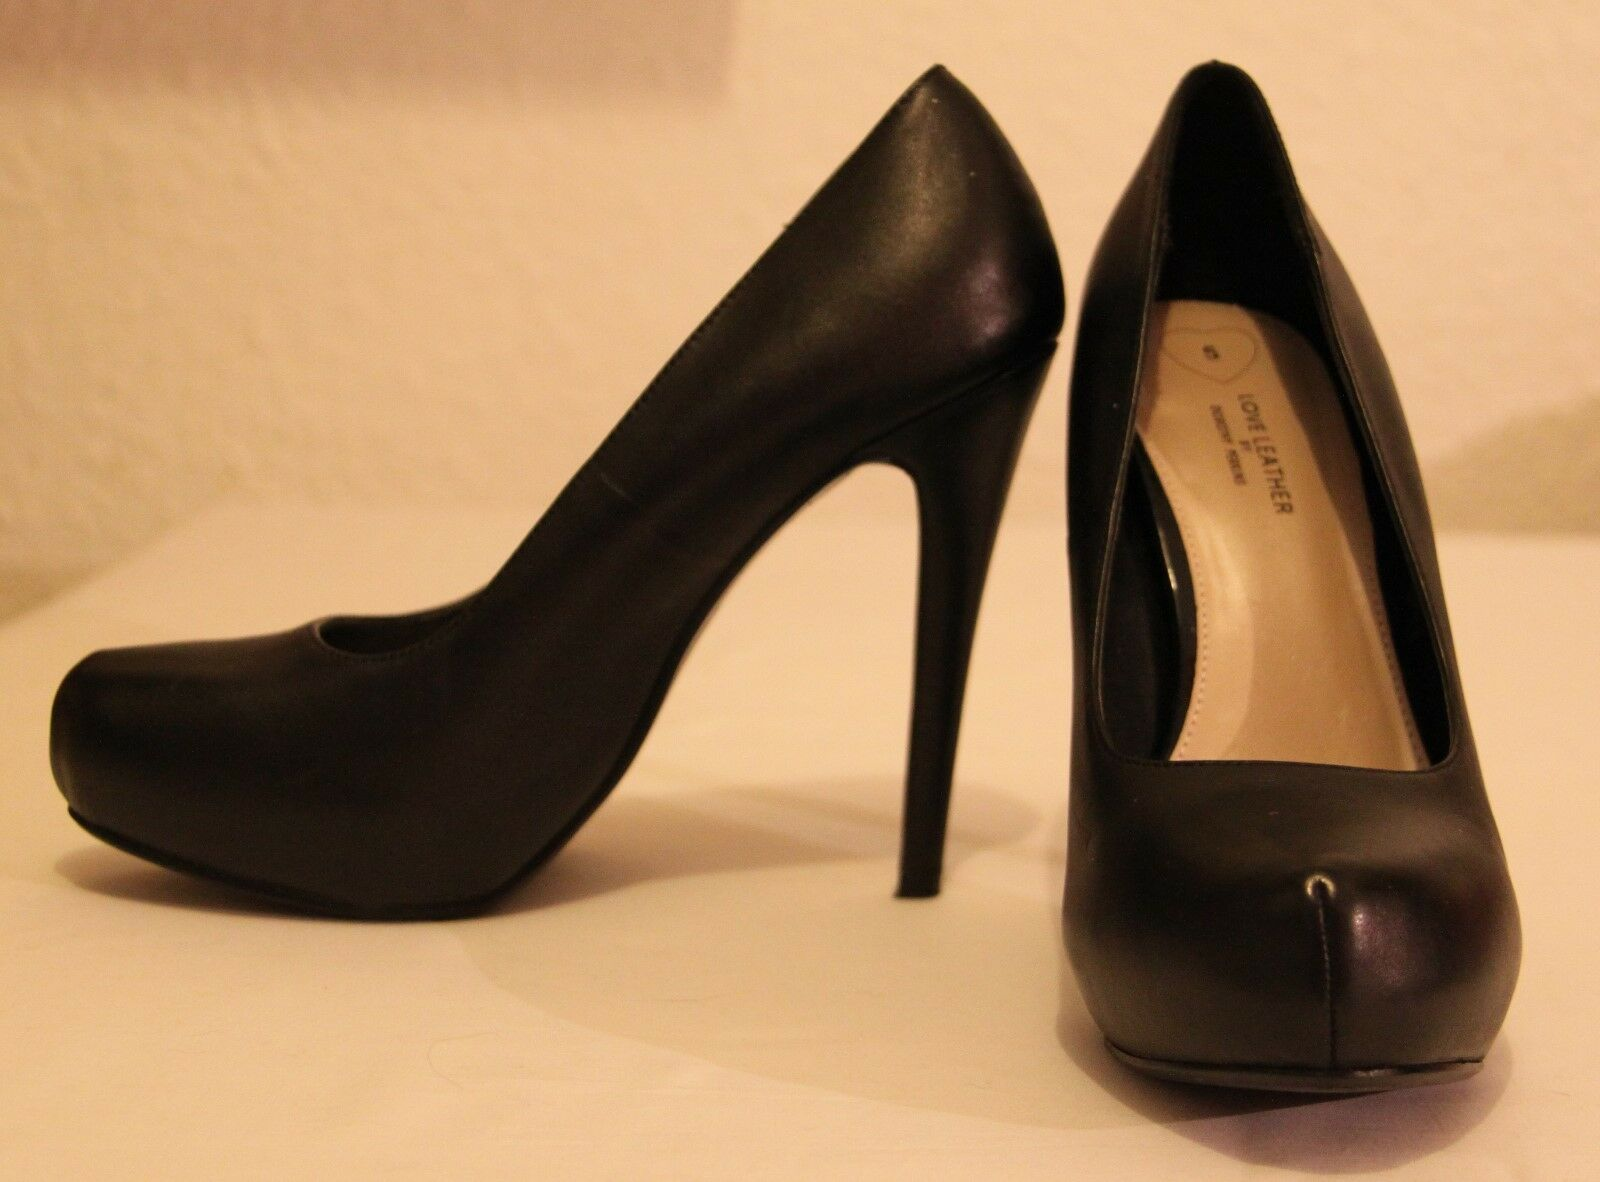 Dgoldthy Perkins Black Leather stiletto shoes with platform sole and seamed toe 5